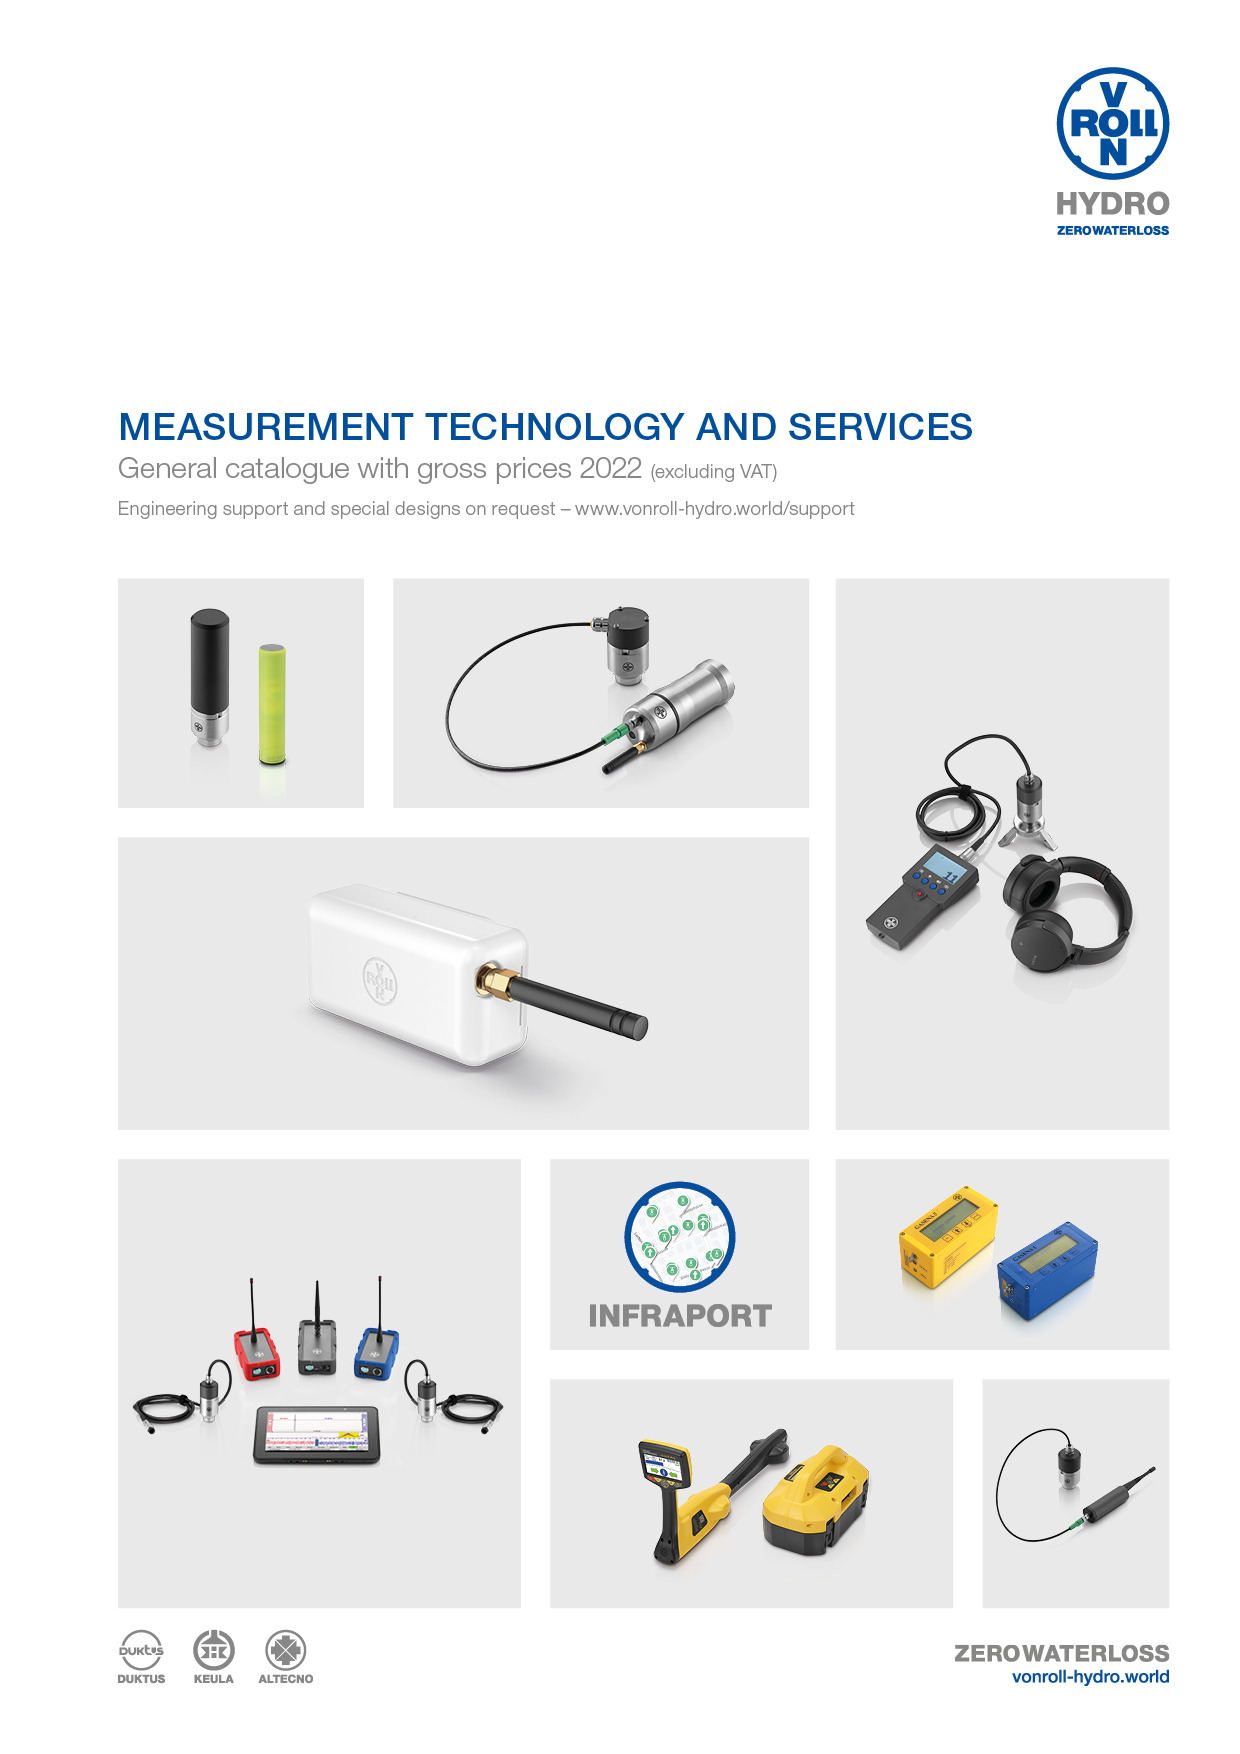 Download the measurement technology brochure as a PDF